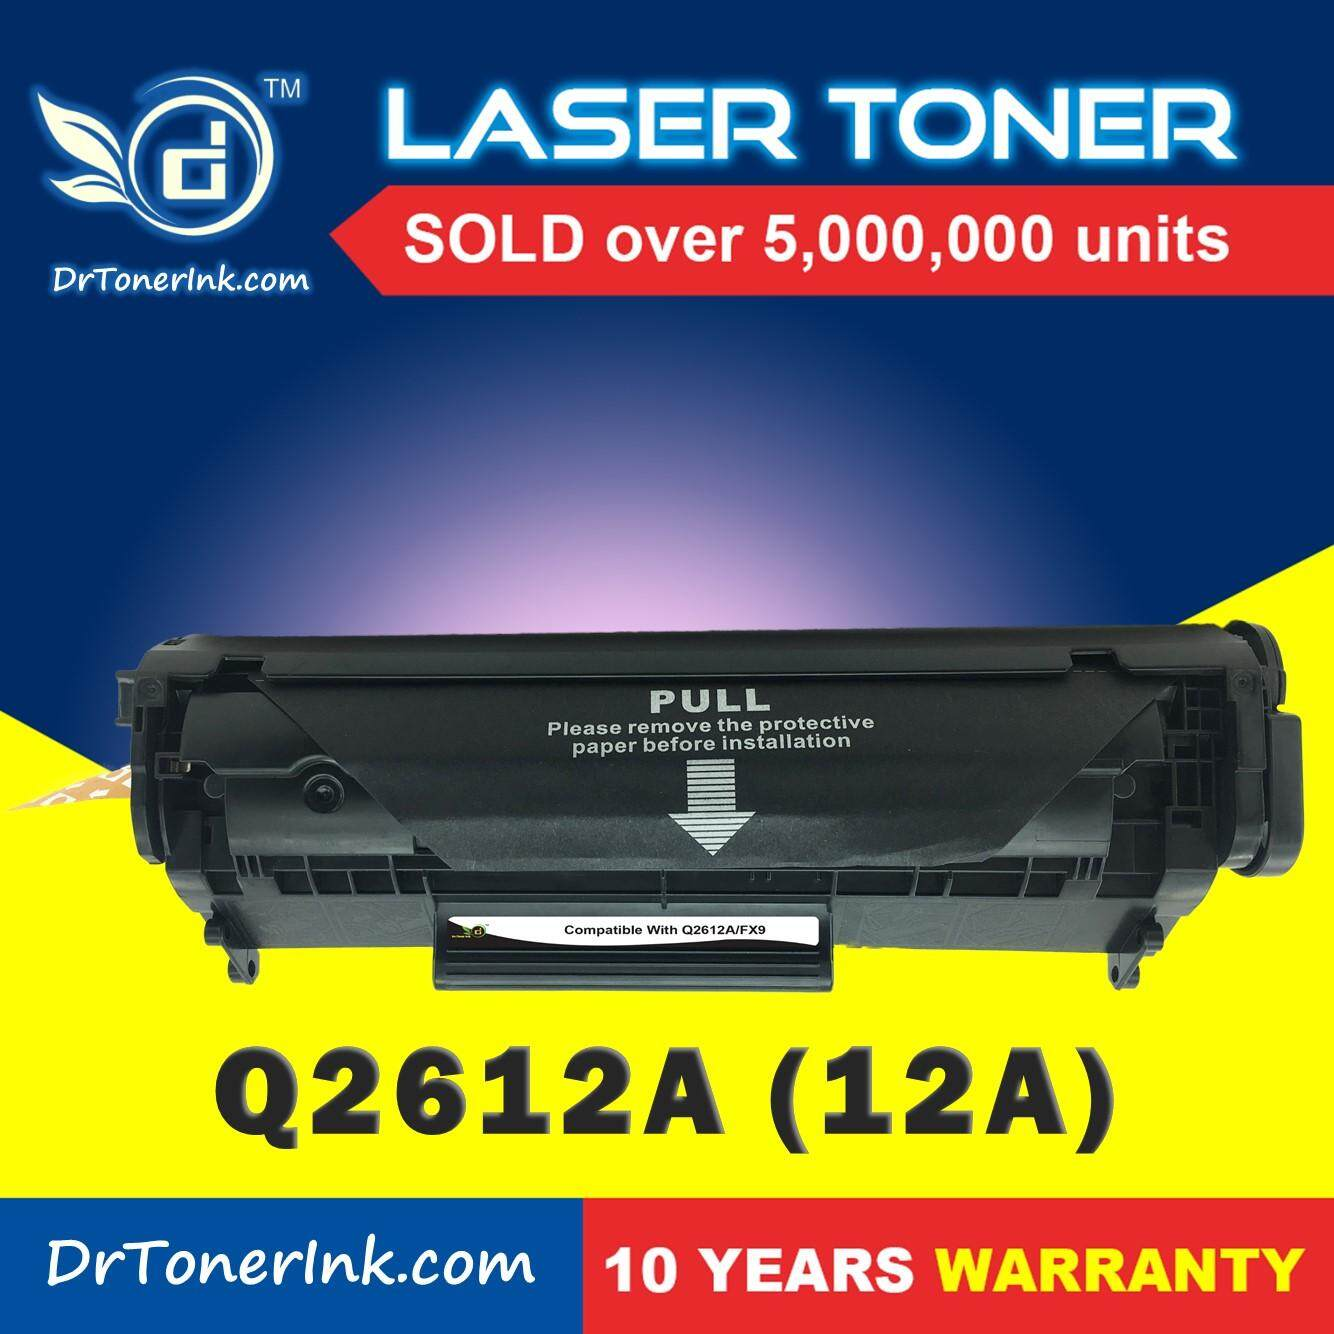 Compatible Toner Drtoner Hp - Q2612a / 2612 / 12a (mono/black) - Laserjet 1010 / 1015 / 1020 / 1022 / 1022n / 1022nw / 3020 / 3030 / 3050 / 3050z / 3052 / 3055 / M1005 / M1319f - Low Cost & Affordable By Drtonerink.com.